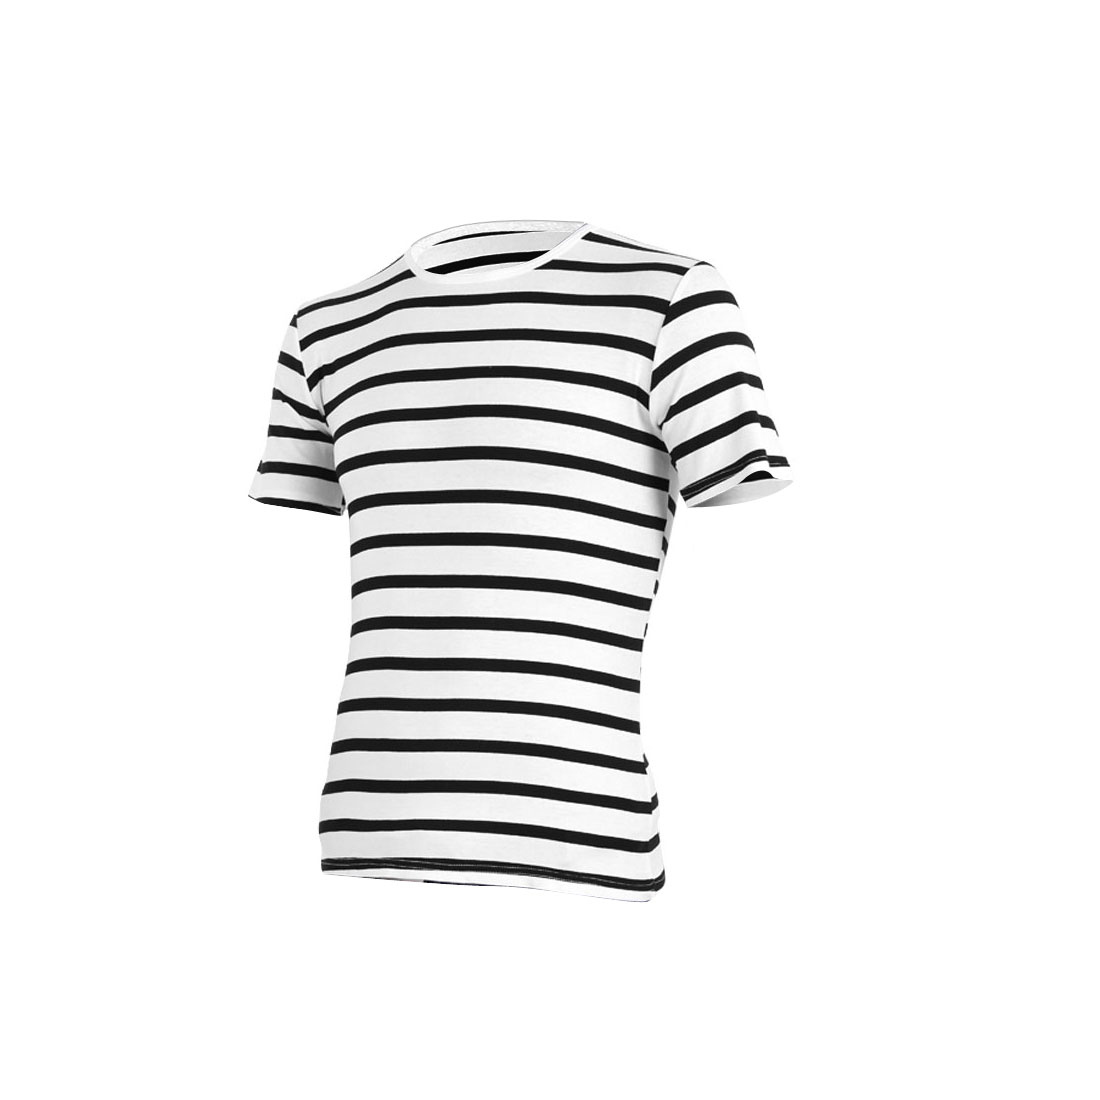 Men Personalized Stretchy Striped Stylish Leisure Shirt White M